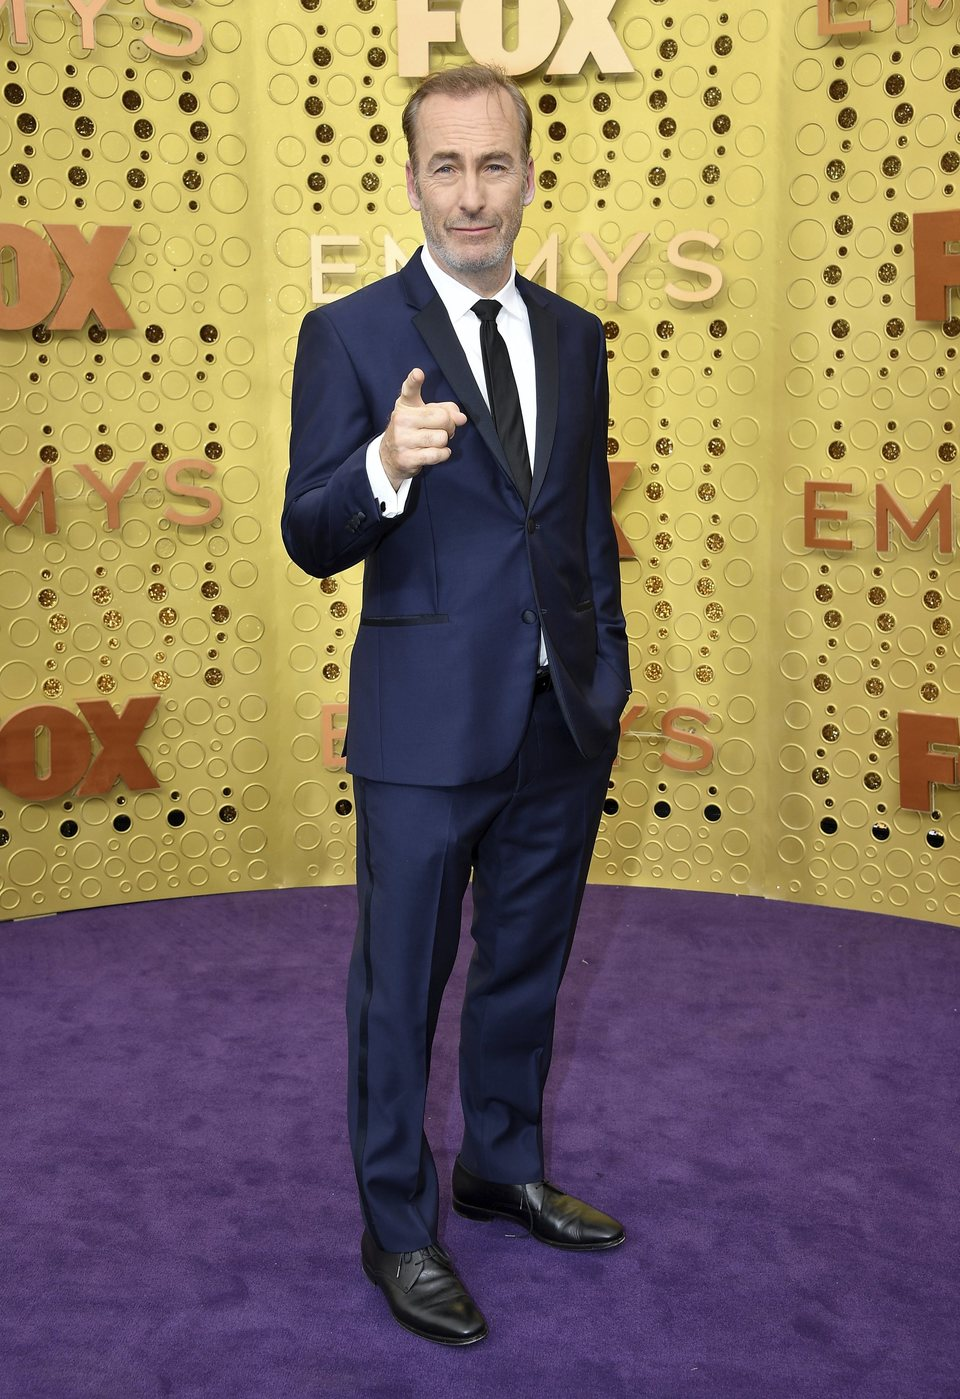 Bob Odenkirk arrives at the 71st Primetime Emmy Awards